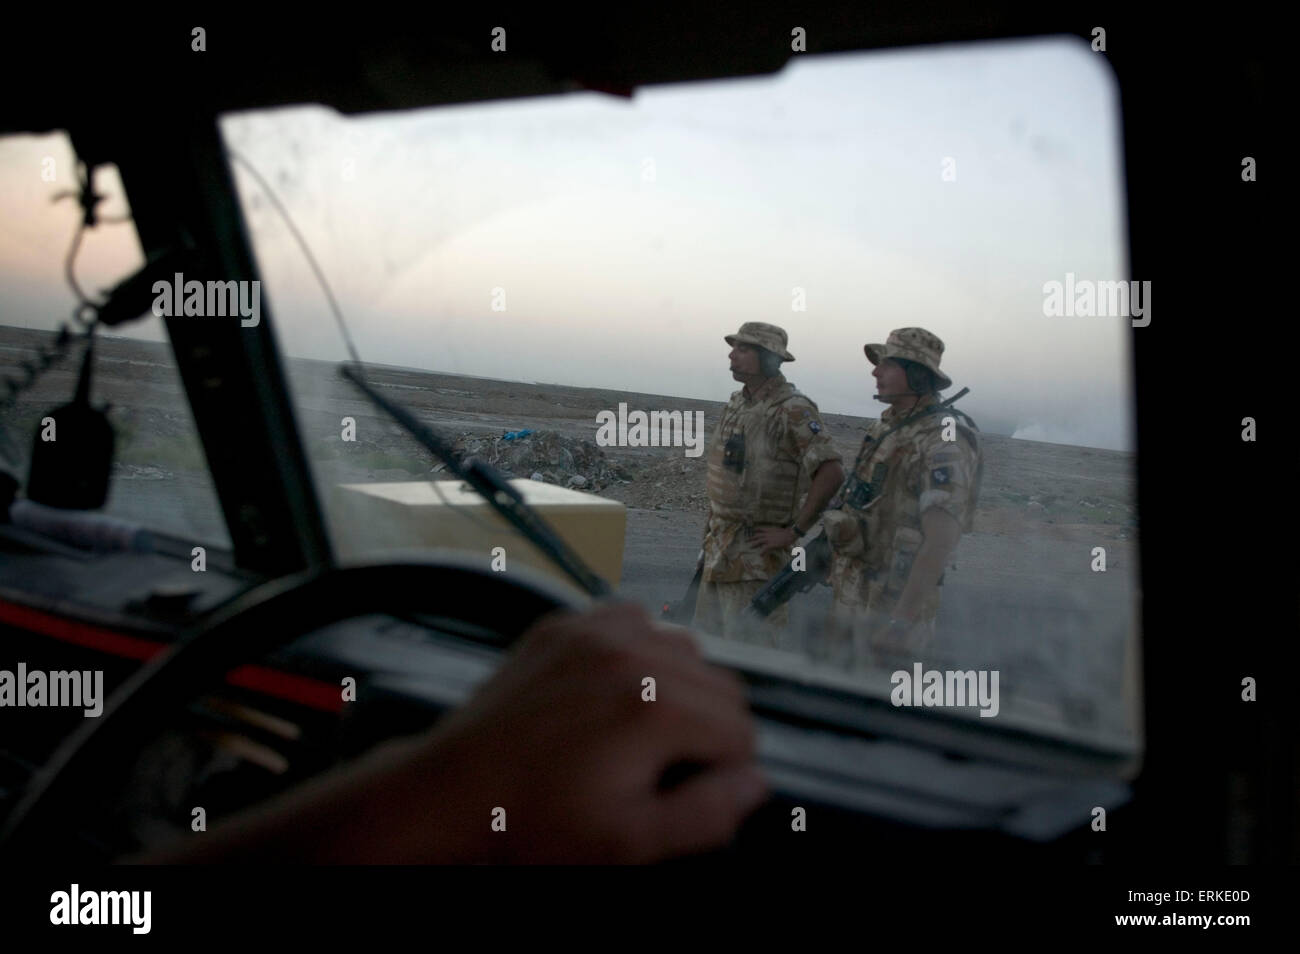 British Forces in Iraq.  Members of the 1st Battalion Devonshire and Dorset Light Infantry on patrol near Basra, Southern Iraq.      Credit: Gary Calton / eyevine  For further information please contact eyevine tel: +44 (0) 20 8709 8709 e-mail: info@eyevine.com www.eyevine.com Credit: Gary Calton / eyevine  For further information please contact eyevine tel: +44 (0) 20 8709 8709 e-mail: info@eyevine.com www.eyevine.com Stock Photo